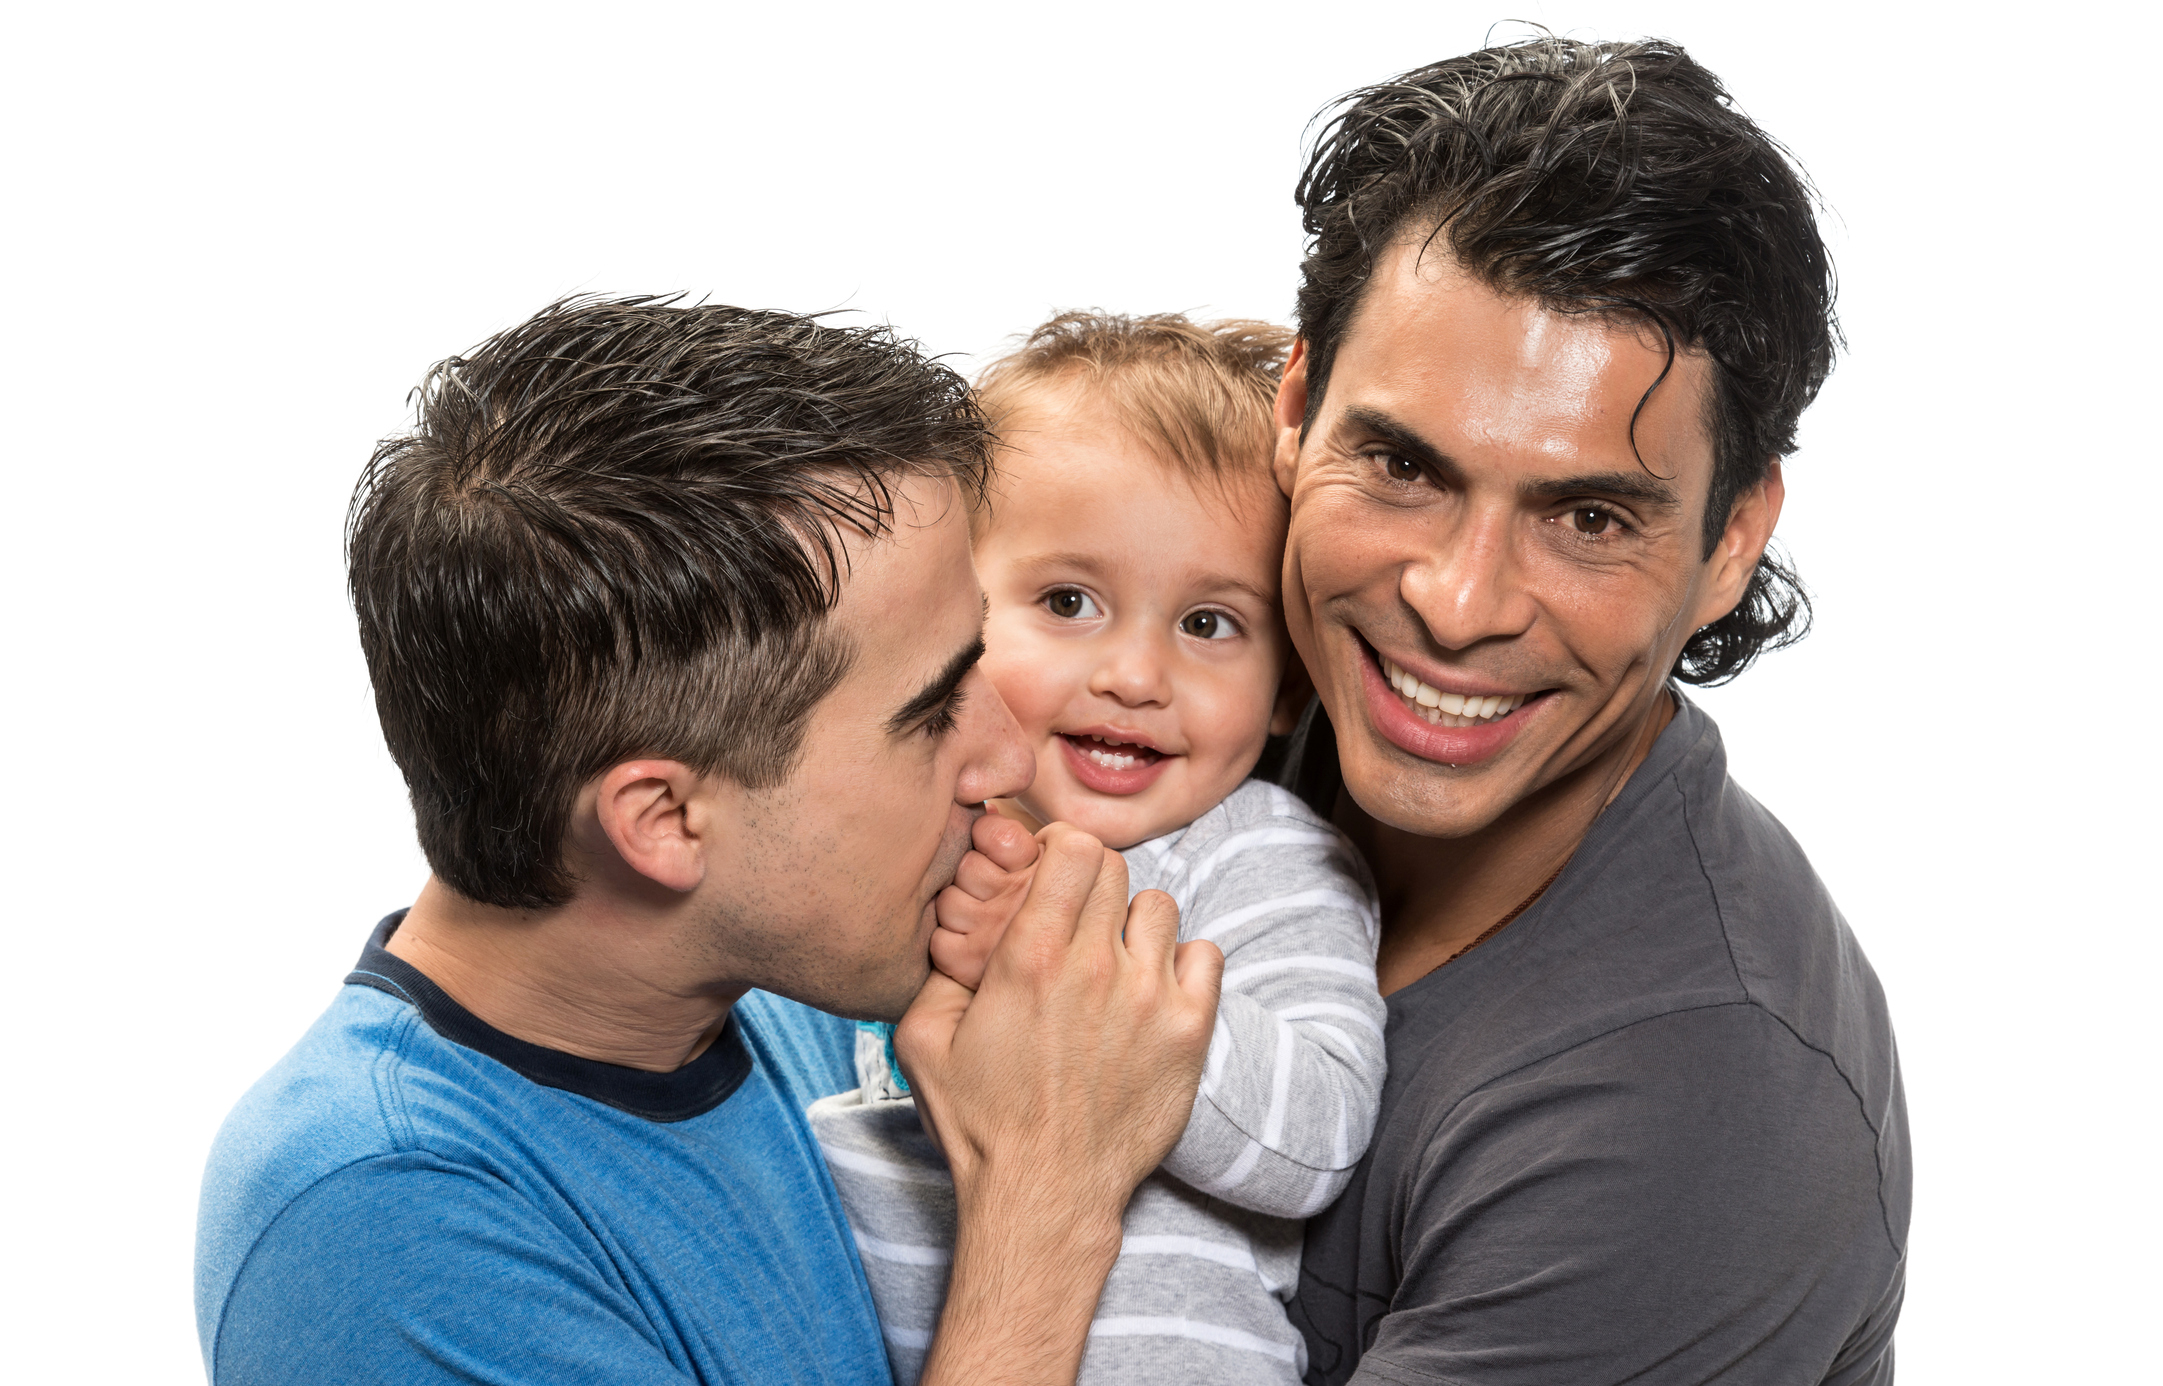 Pros and cons of gay couple adoption